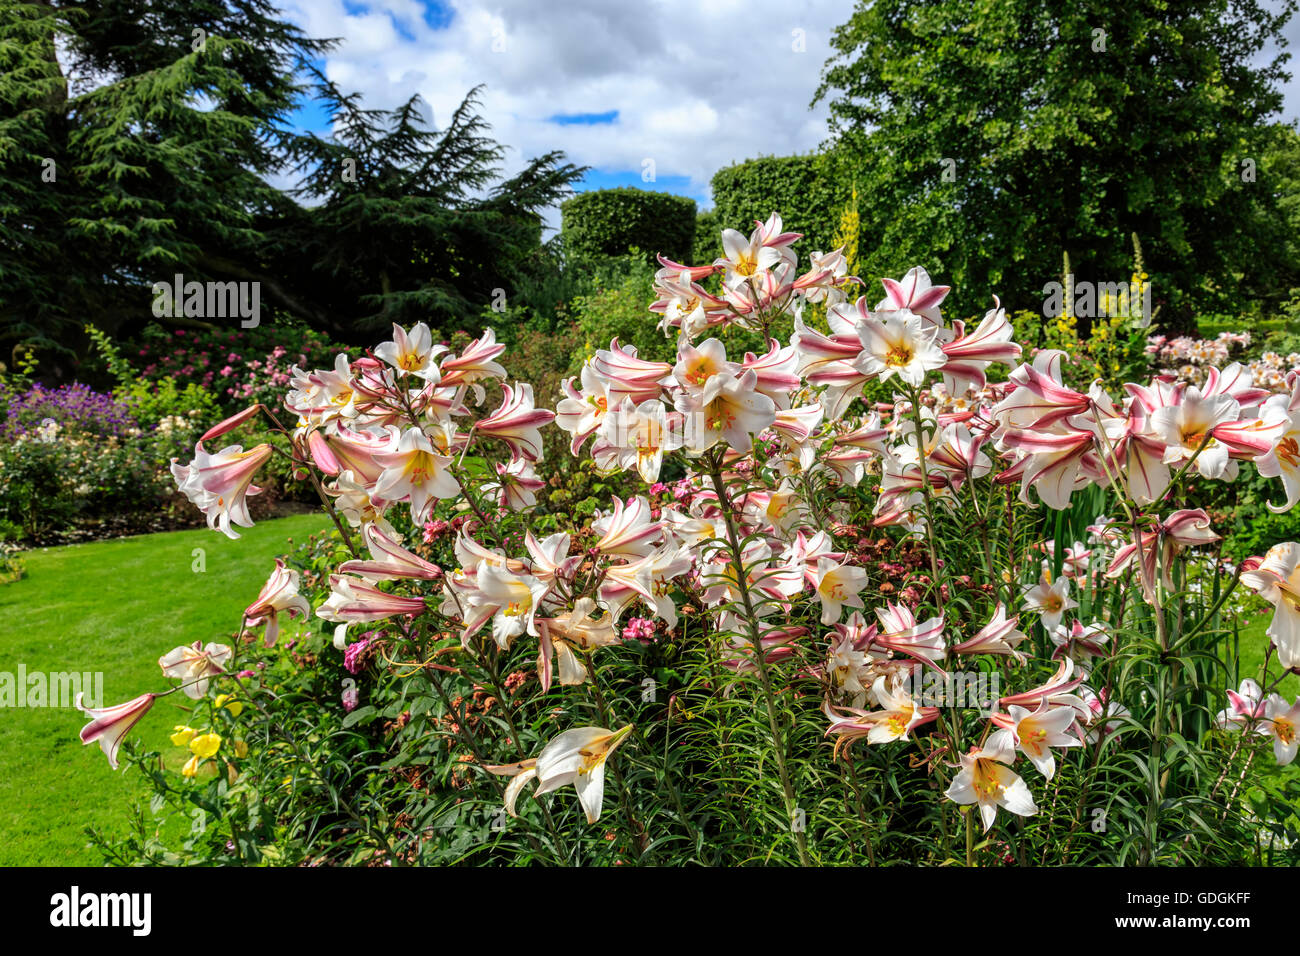 Tall flowering lily plants in a herbaceous border of an English garden. - Stock Image